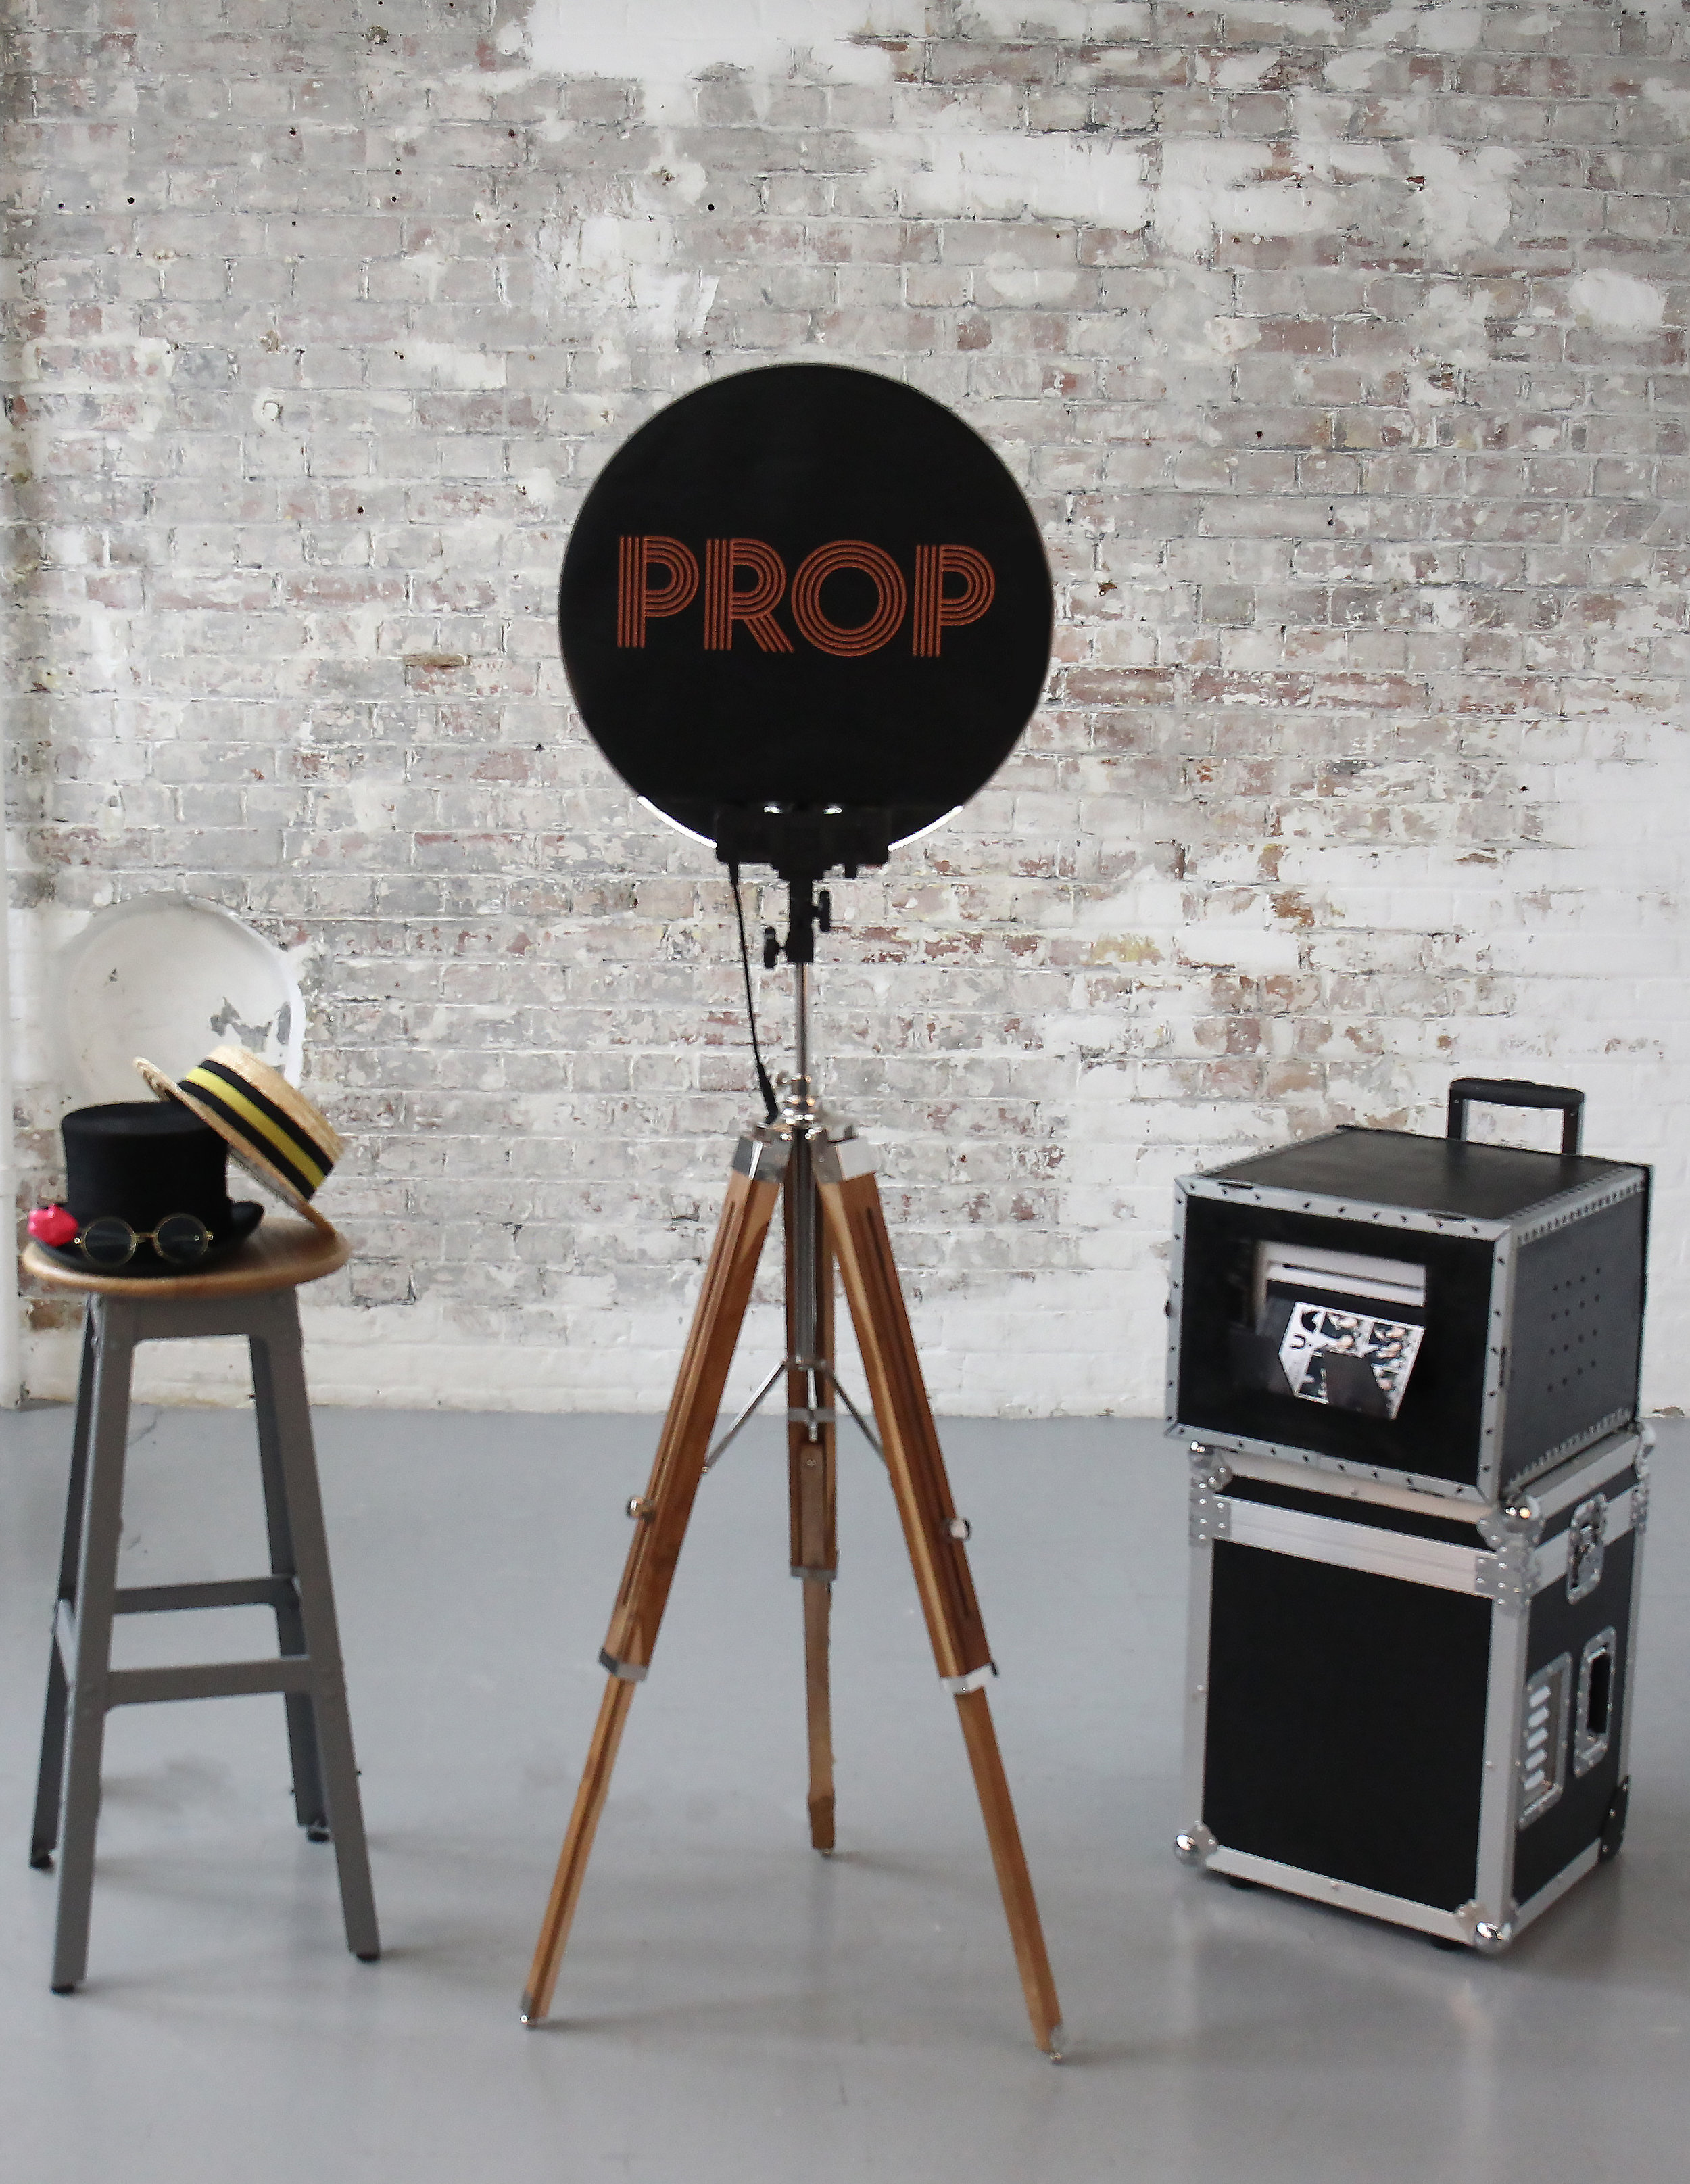 Prop Photo Booth Affordable Wedding Advice Help London